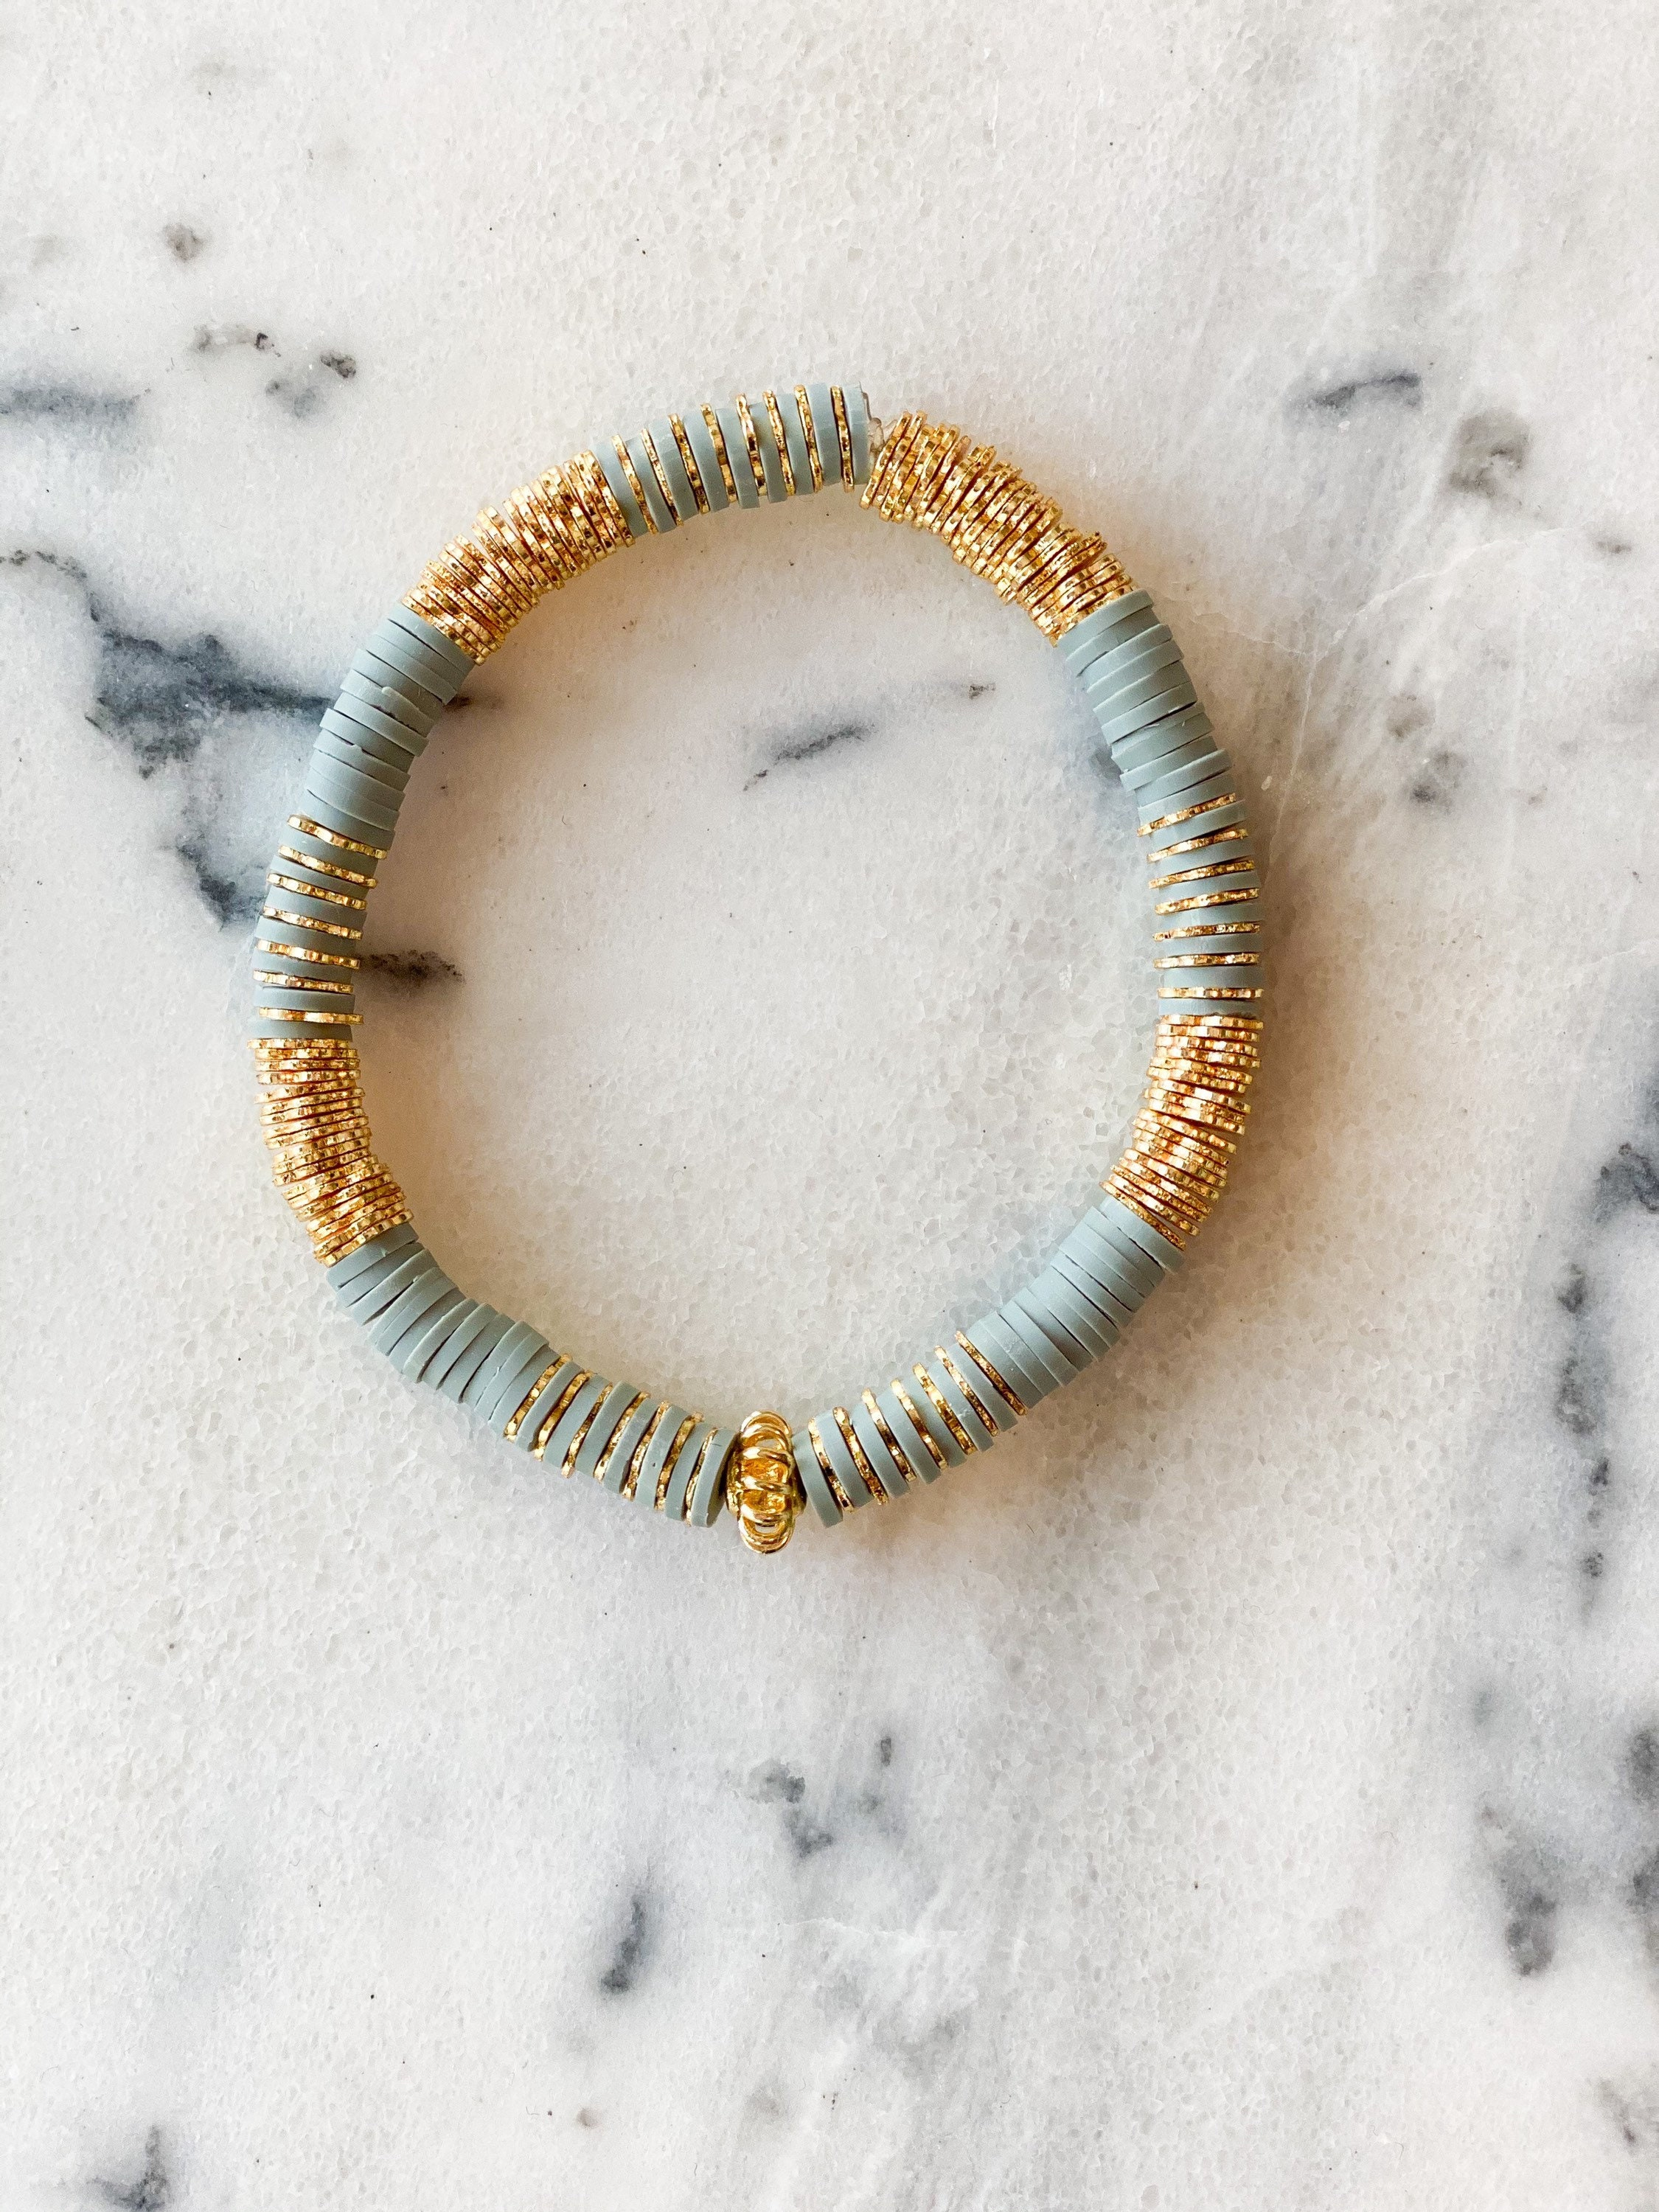 6mm Heishi and Textured gold plated beads stacking bracelet